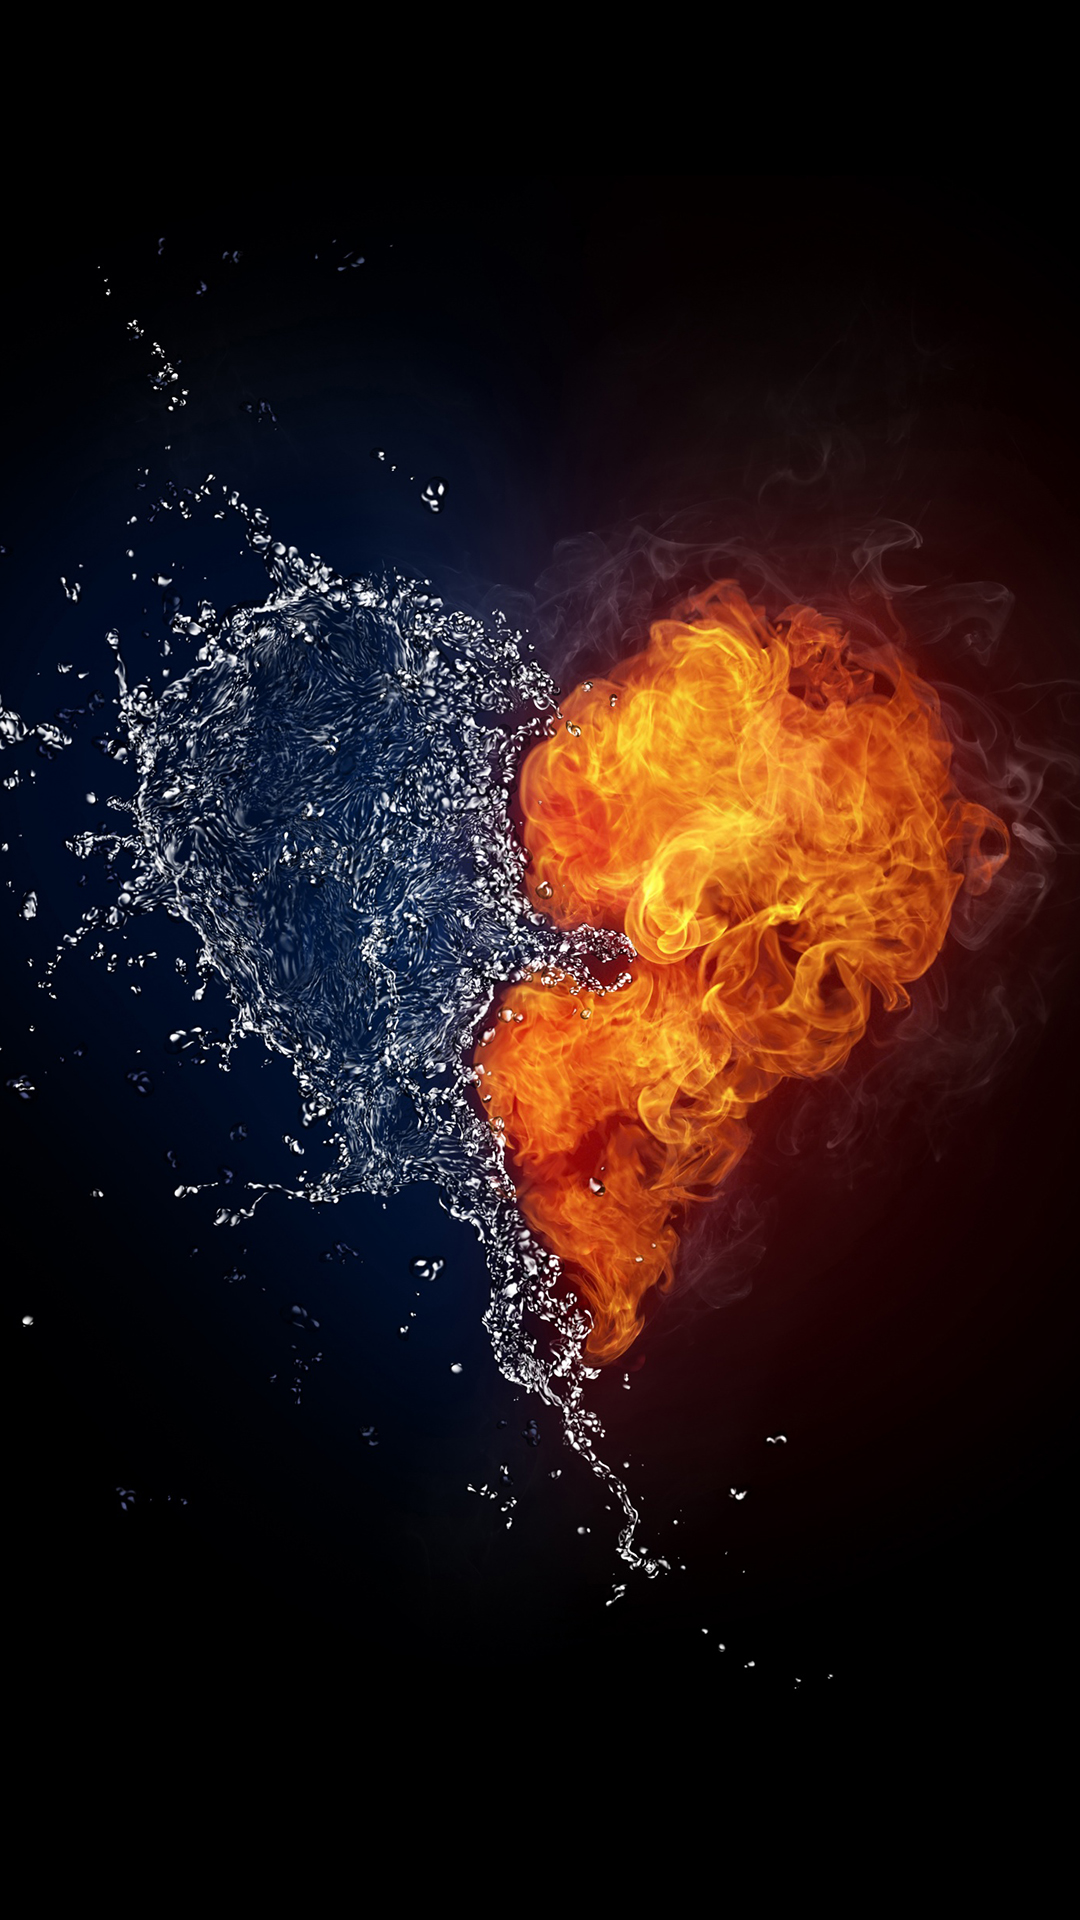 Simple Wallpapers For Iphone 5 Water And Flames Iphone Wallpaper Hd